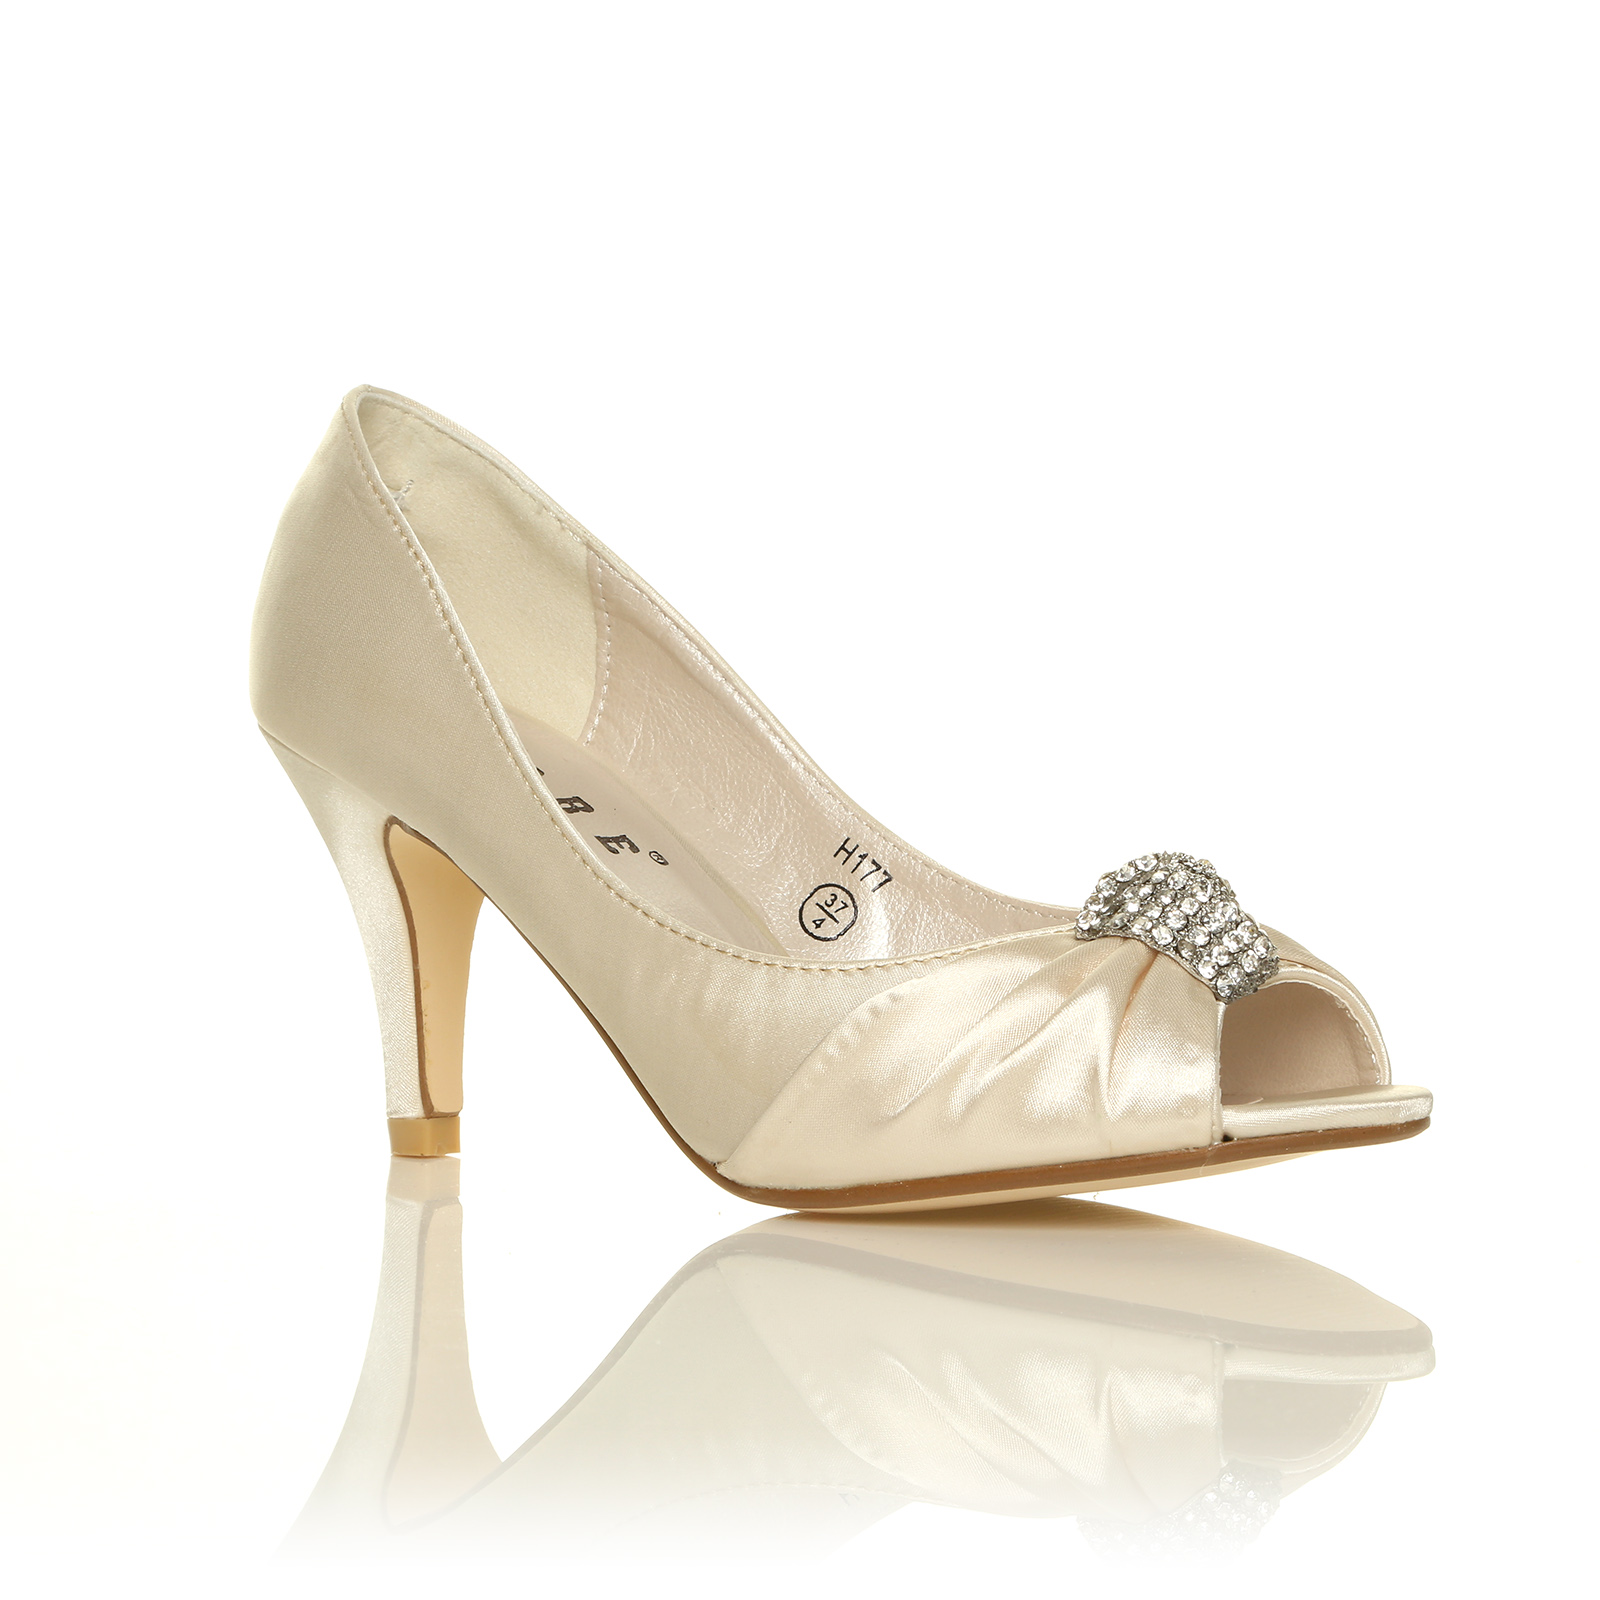 LADIES IVORY WHITE SATIN LOW HEEL BRIDAL PROM PARTY ...